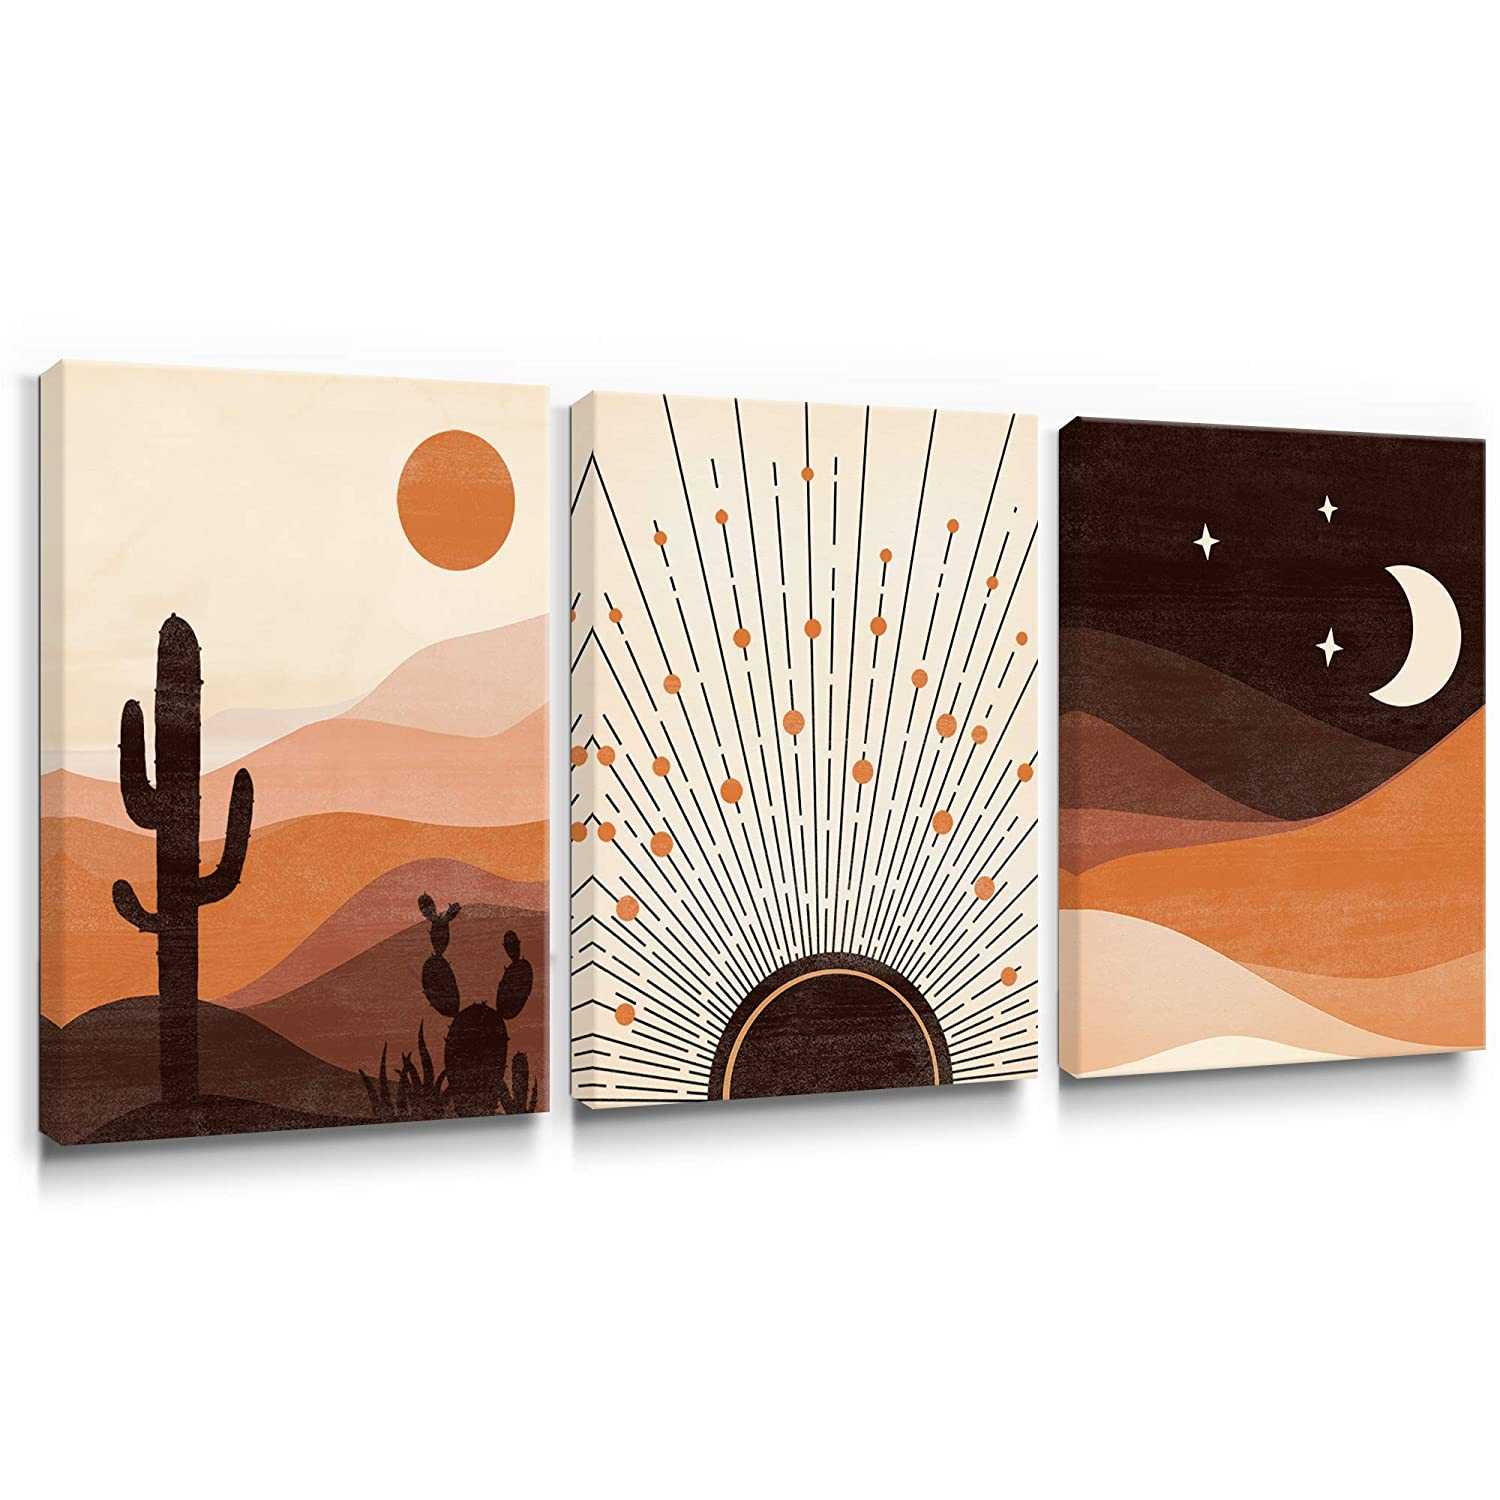 Geeignet Boho Wall Art Desert Scenery Canvas Paintings Abstract Sunrise and Sunset Pictures Orange Home Decor for Bathroom Living Room Bedroom 12x16 Inch, 3 Panels